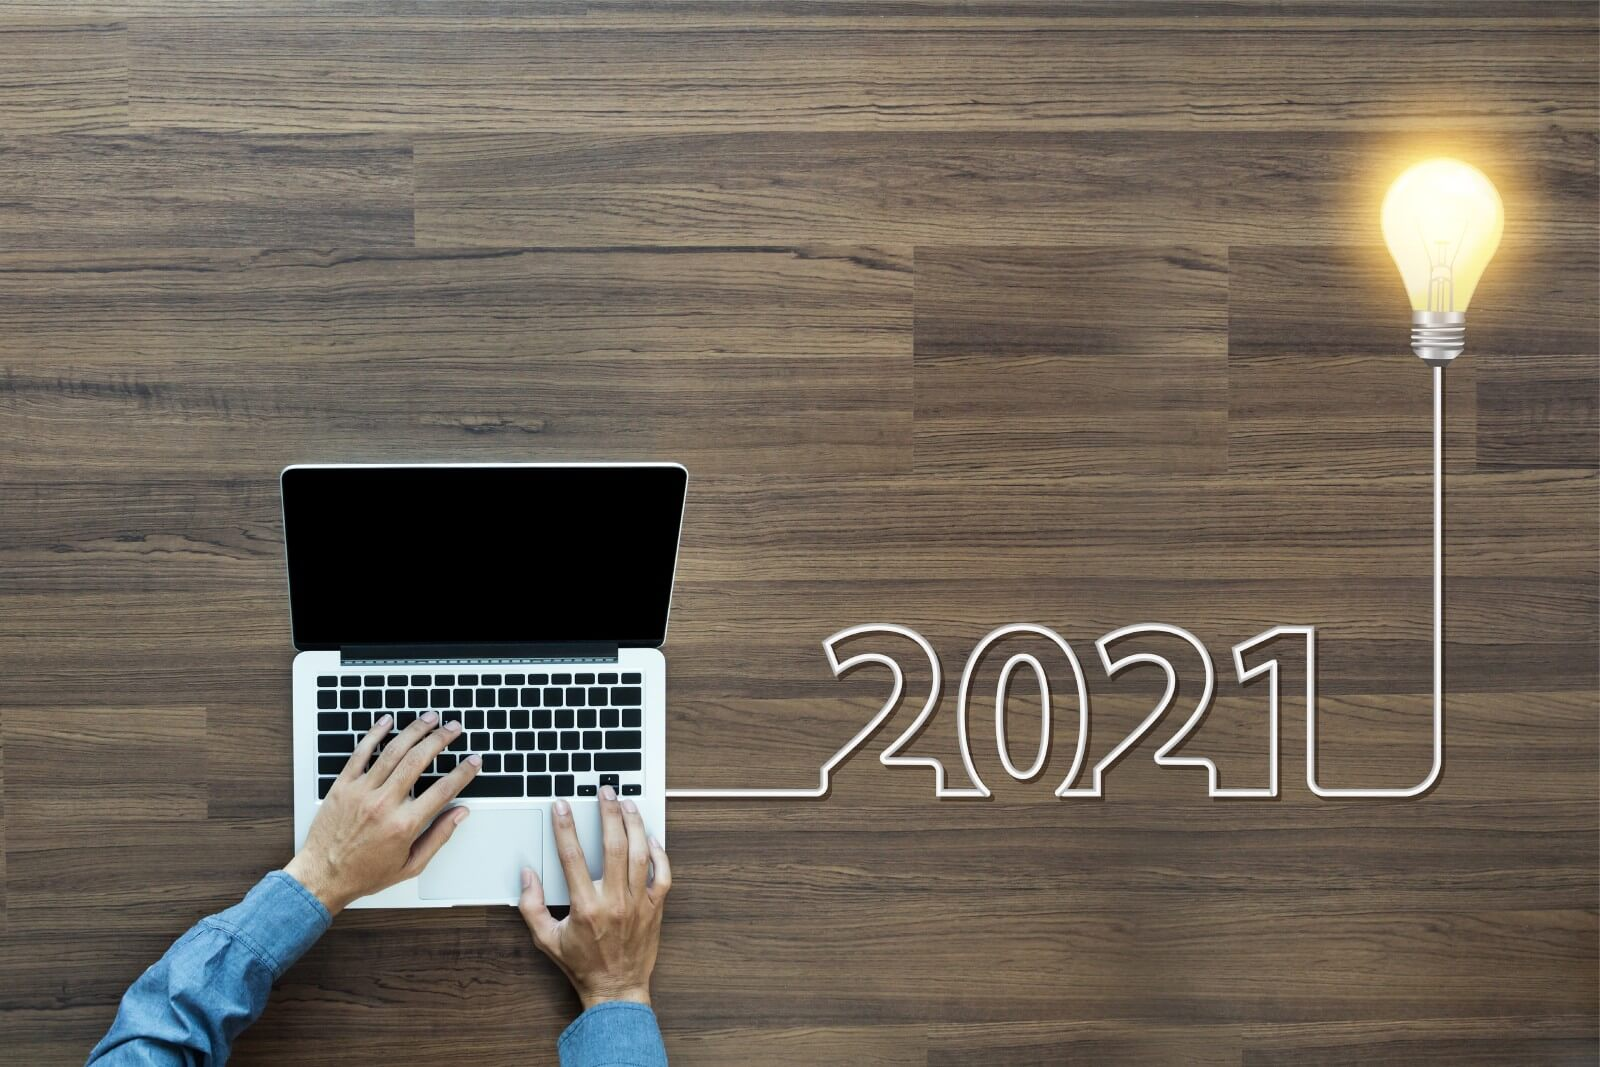 2021 SEO trend ideas